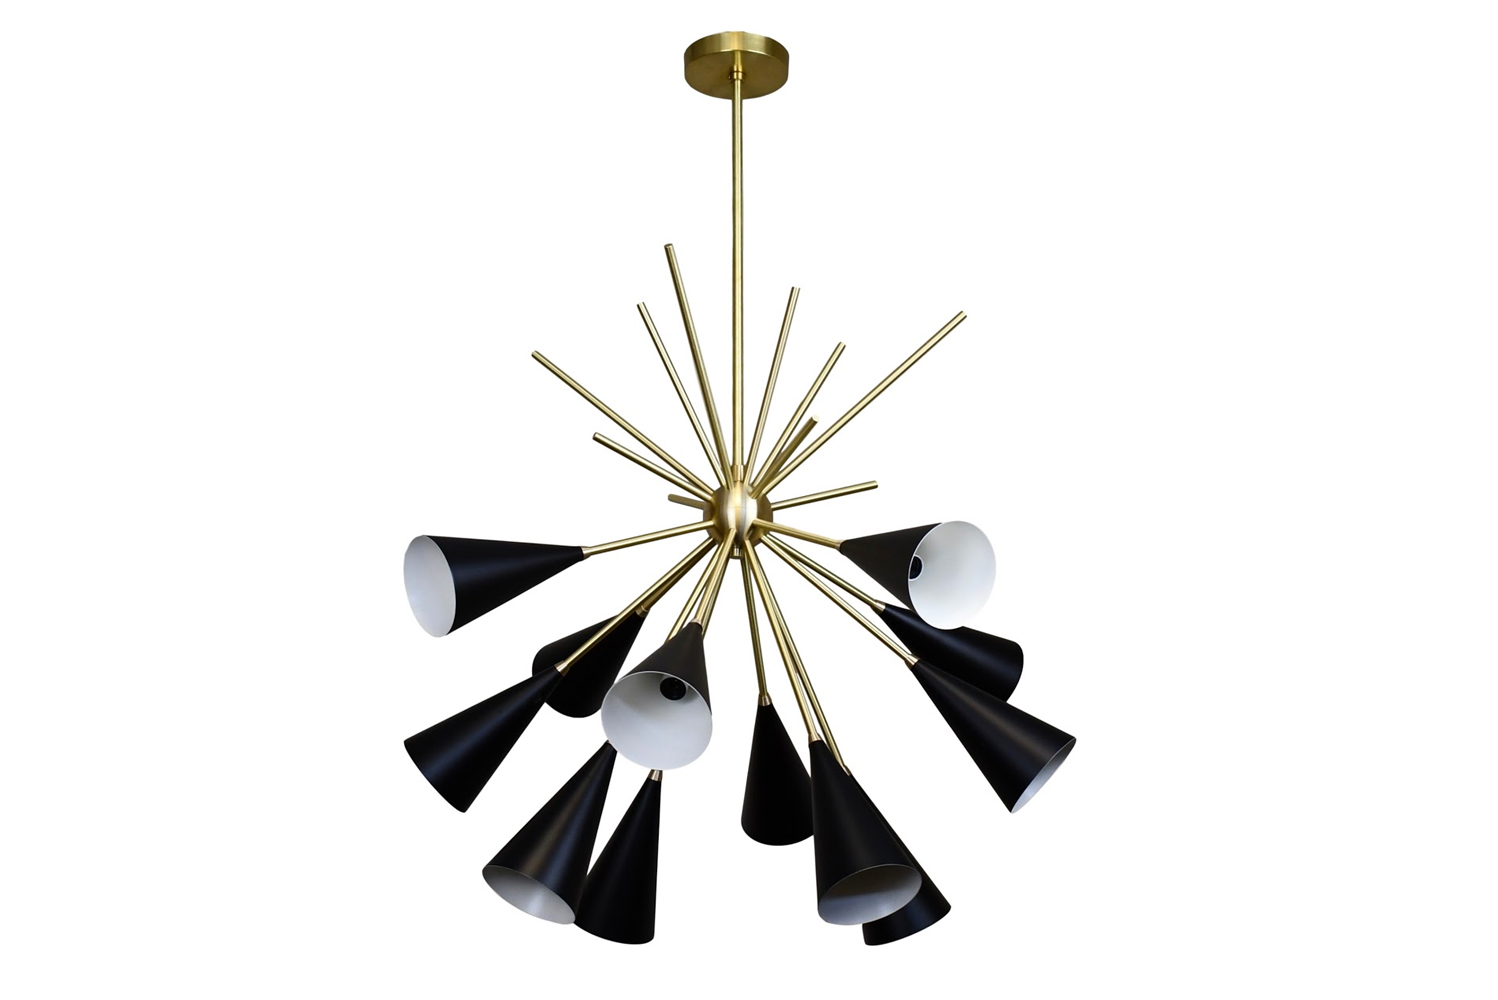 Blending French and Italian modernism with a bit of Hollywood glamour, the Grand Bouquet is a large lighting fixture that generates a glow through 12 enamel-coated cones.